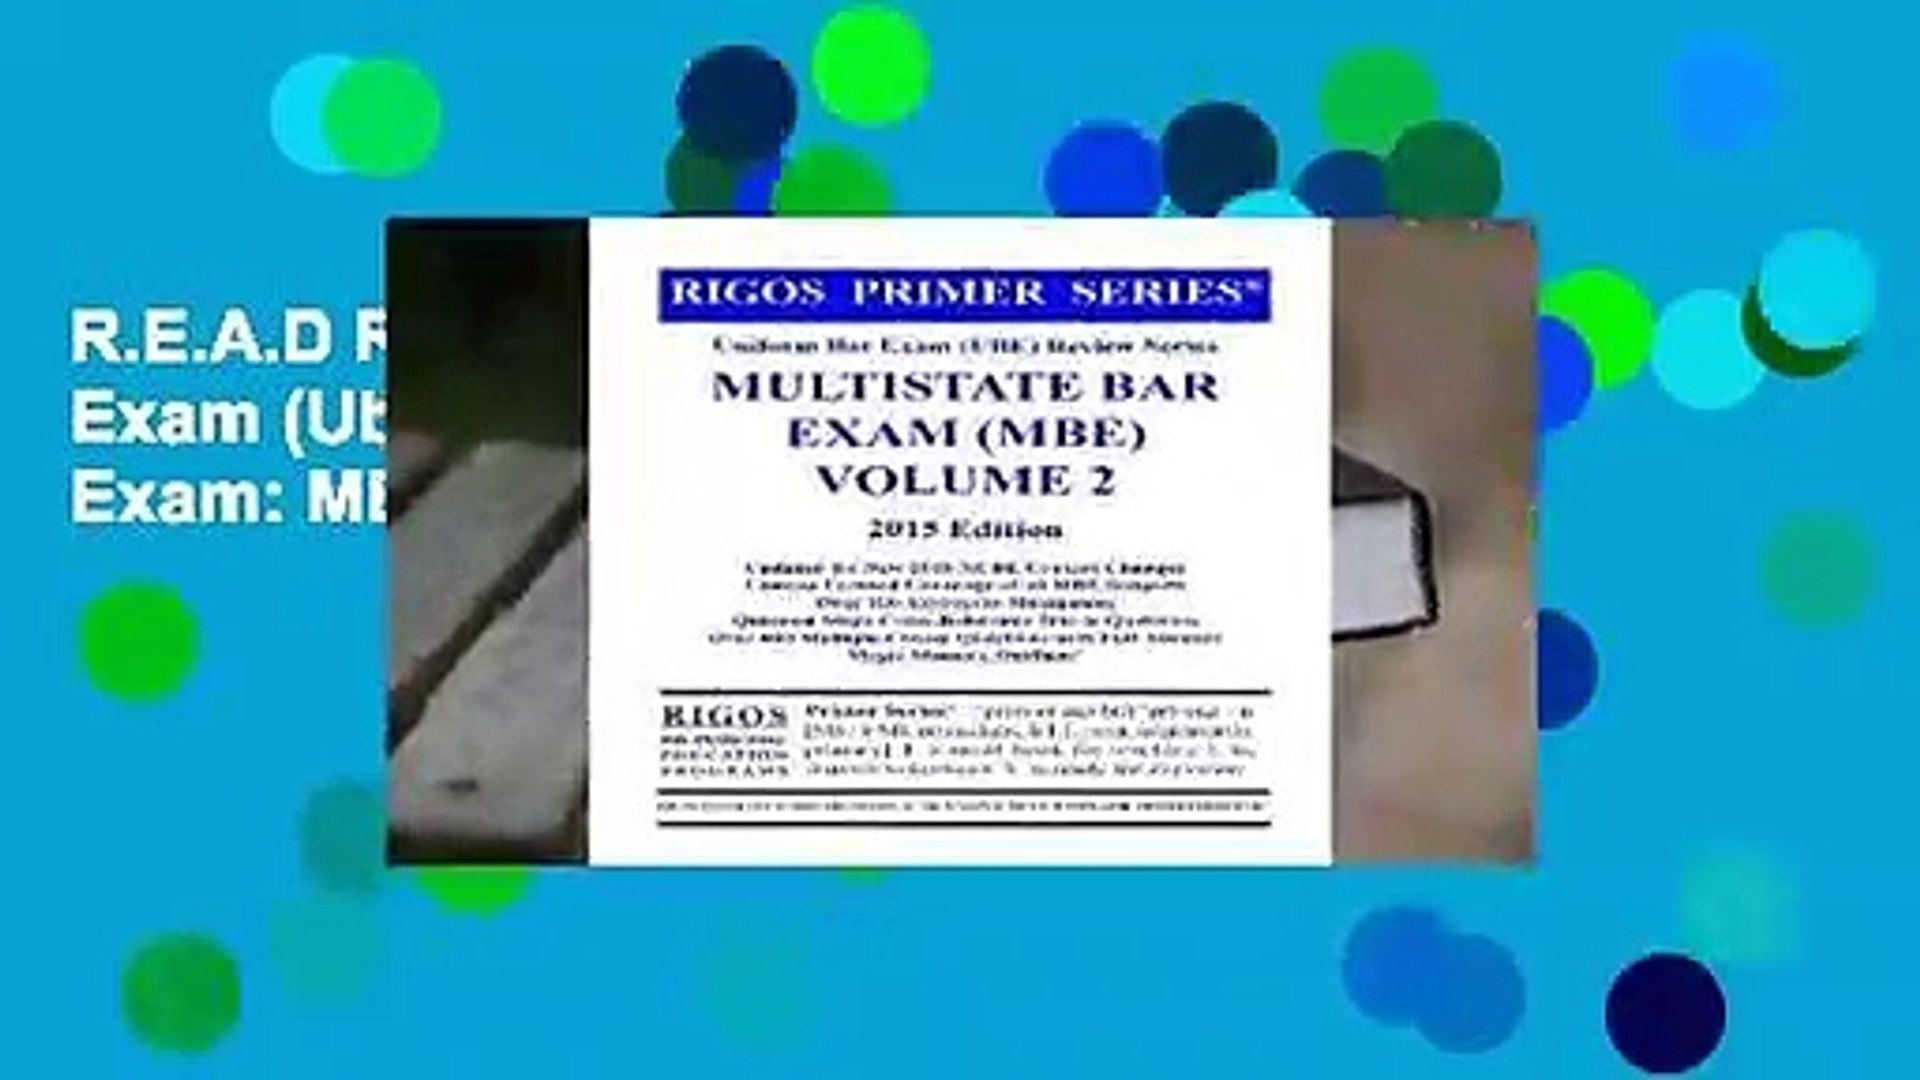 R.E.A.D Rigos Primer Series Uniform Bar Exam (Ube) Review Series Multistate Bar Exam: MBE Volume 2